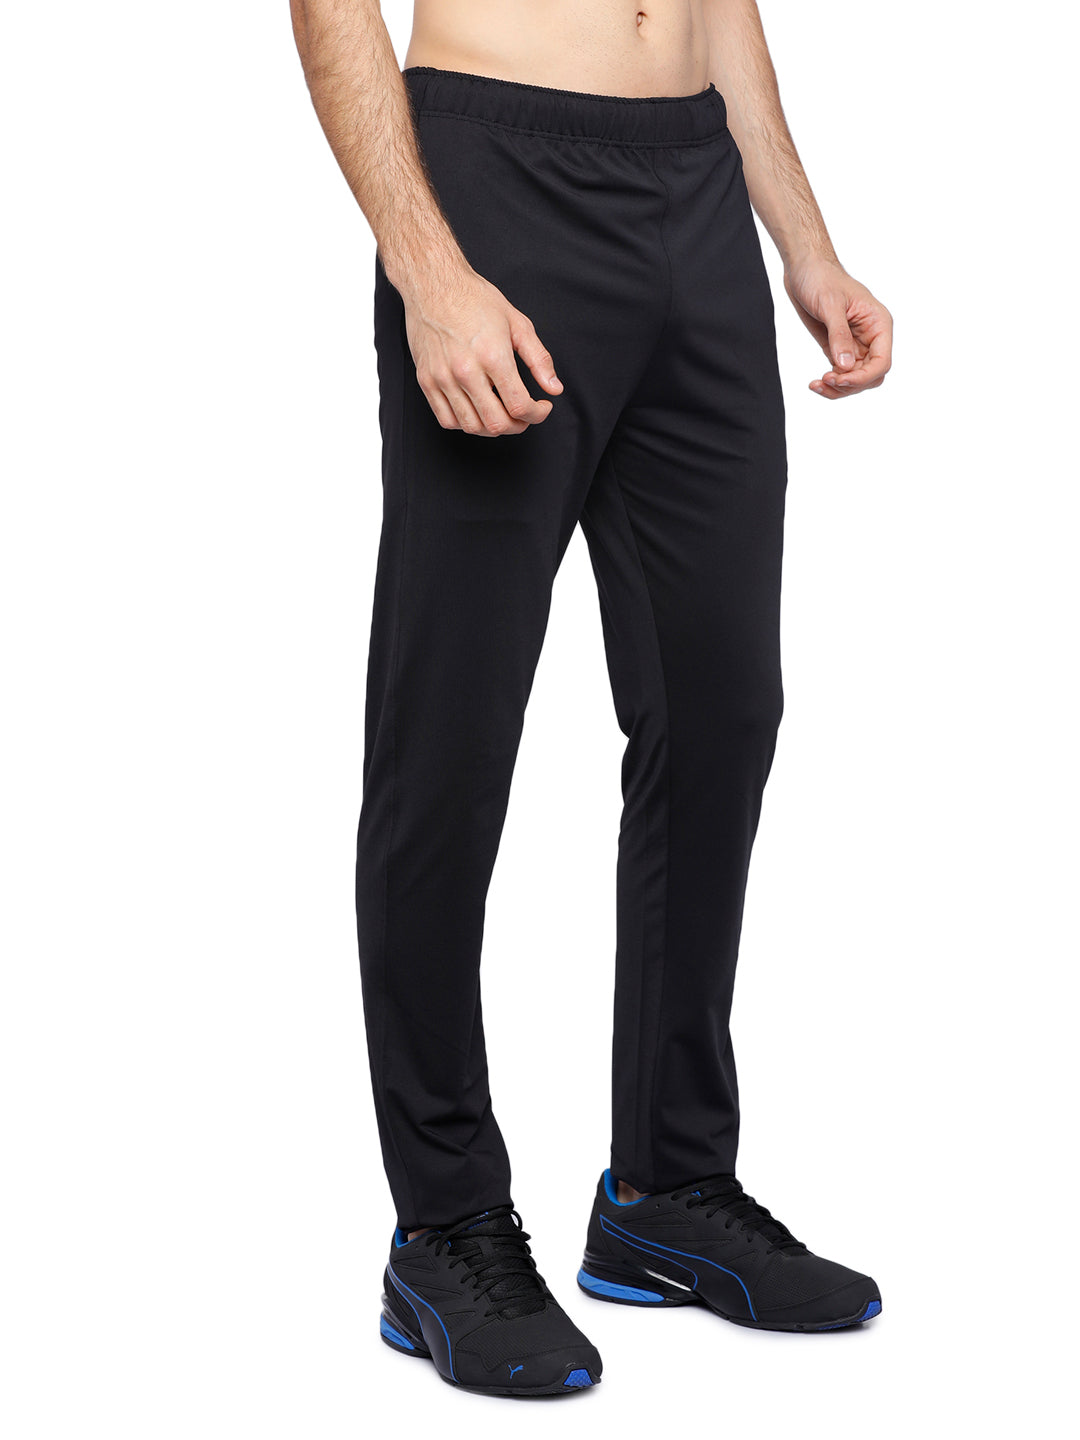 Piranha Men's Black Track Pants - MTP319